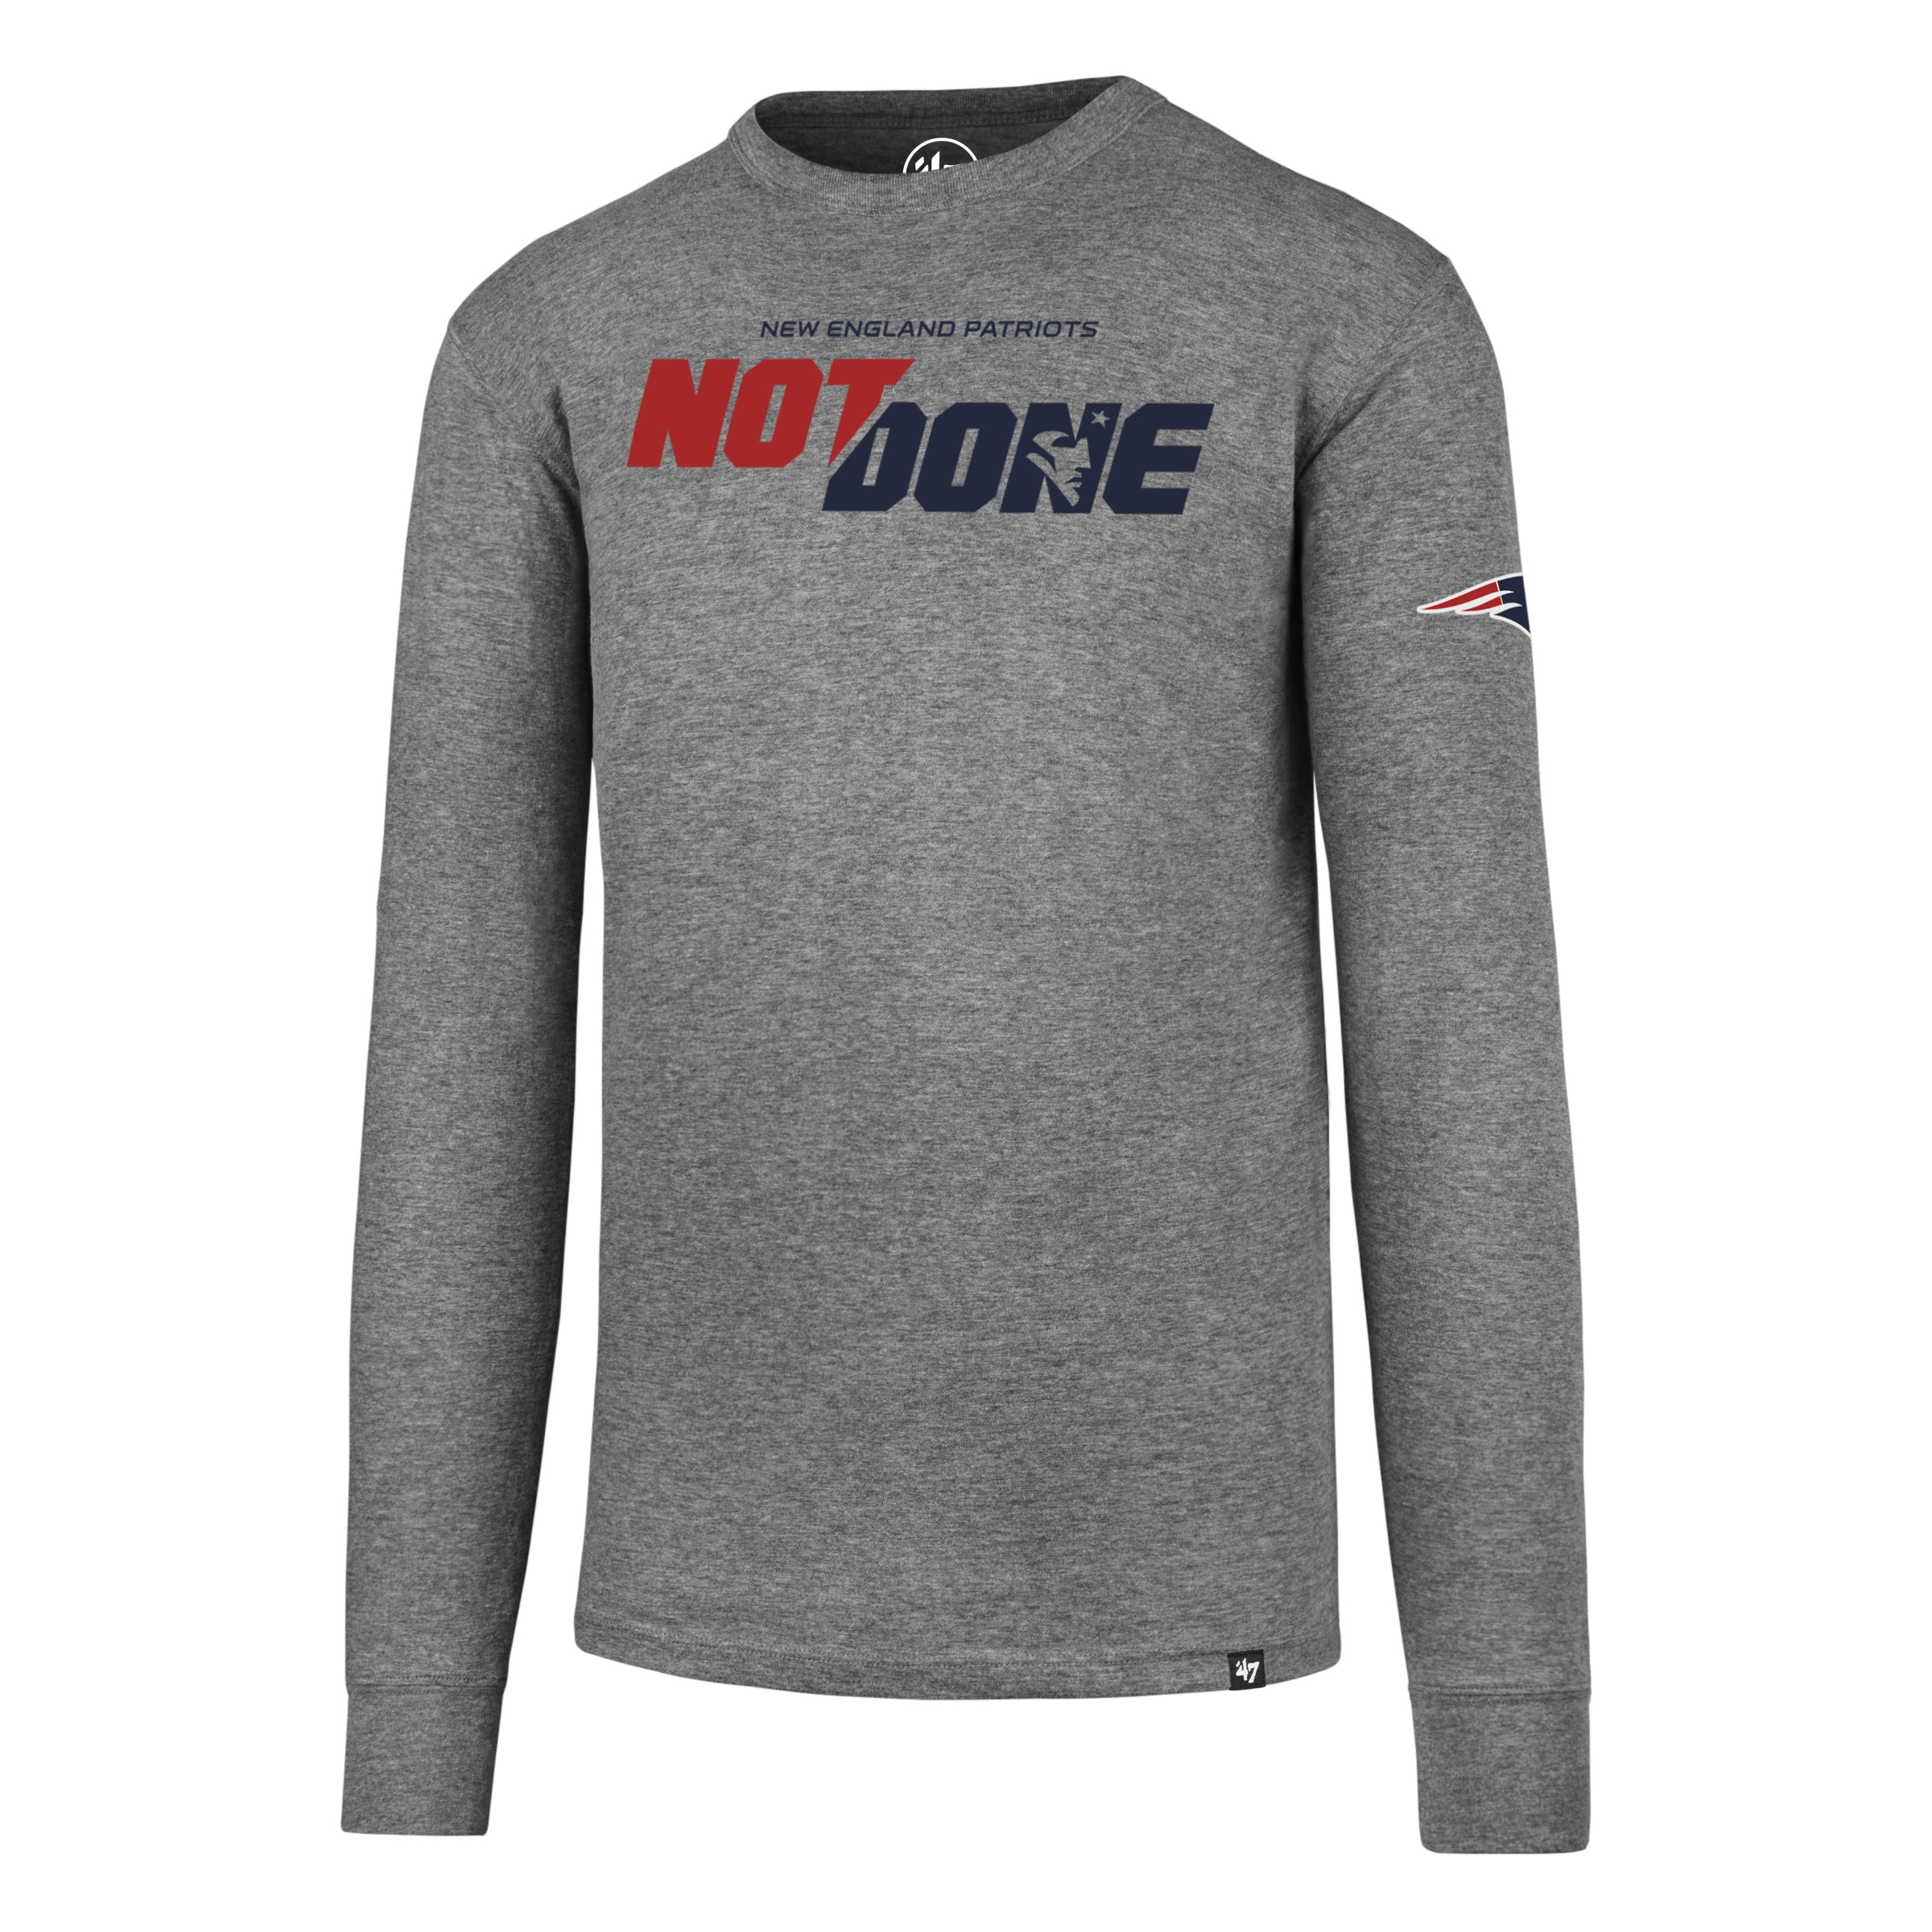 421244 hr af not done l s tee gray %28014540%29 · Mccourtynotdone 2cf8603d5